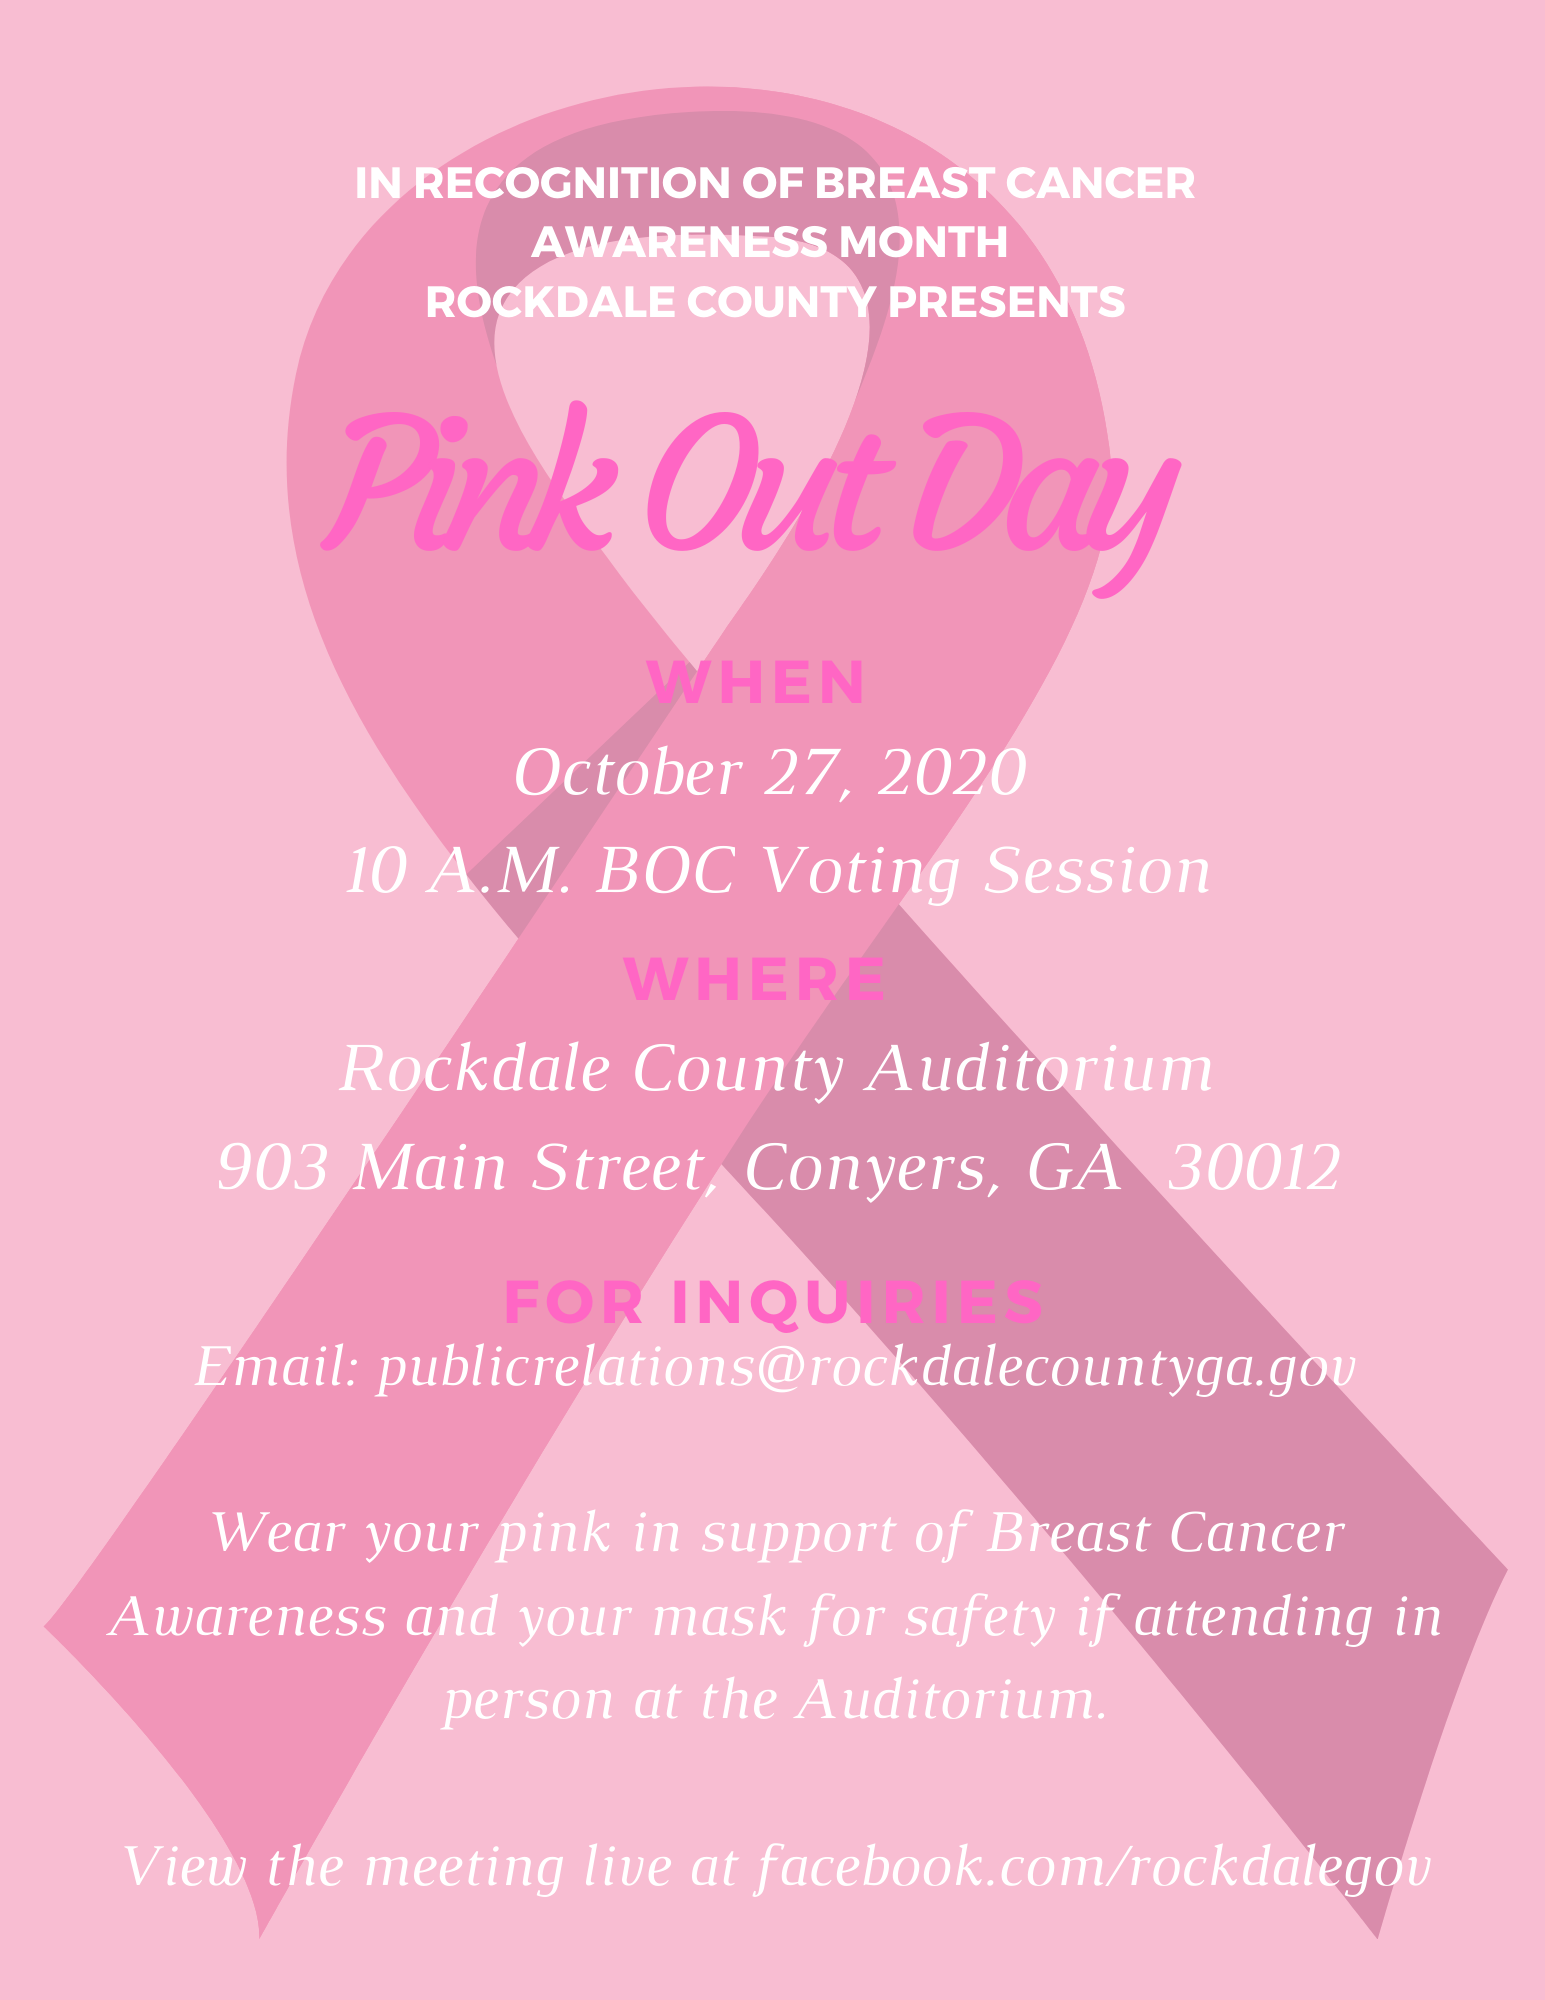 Pink Out Day For Breast Cancer Awareness @ Rockdale Auditorium